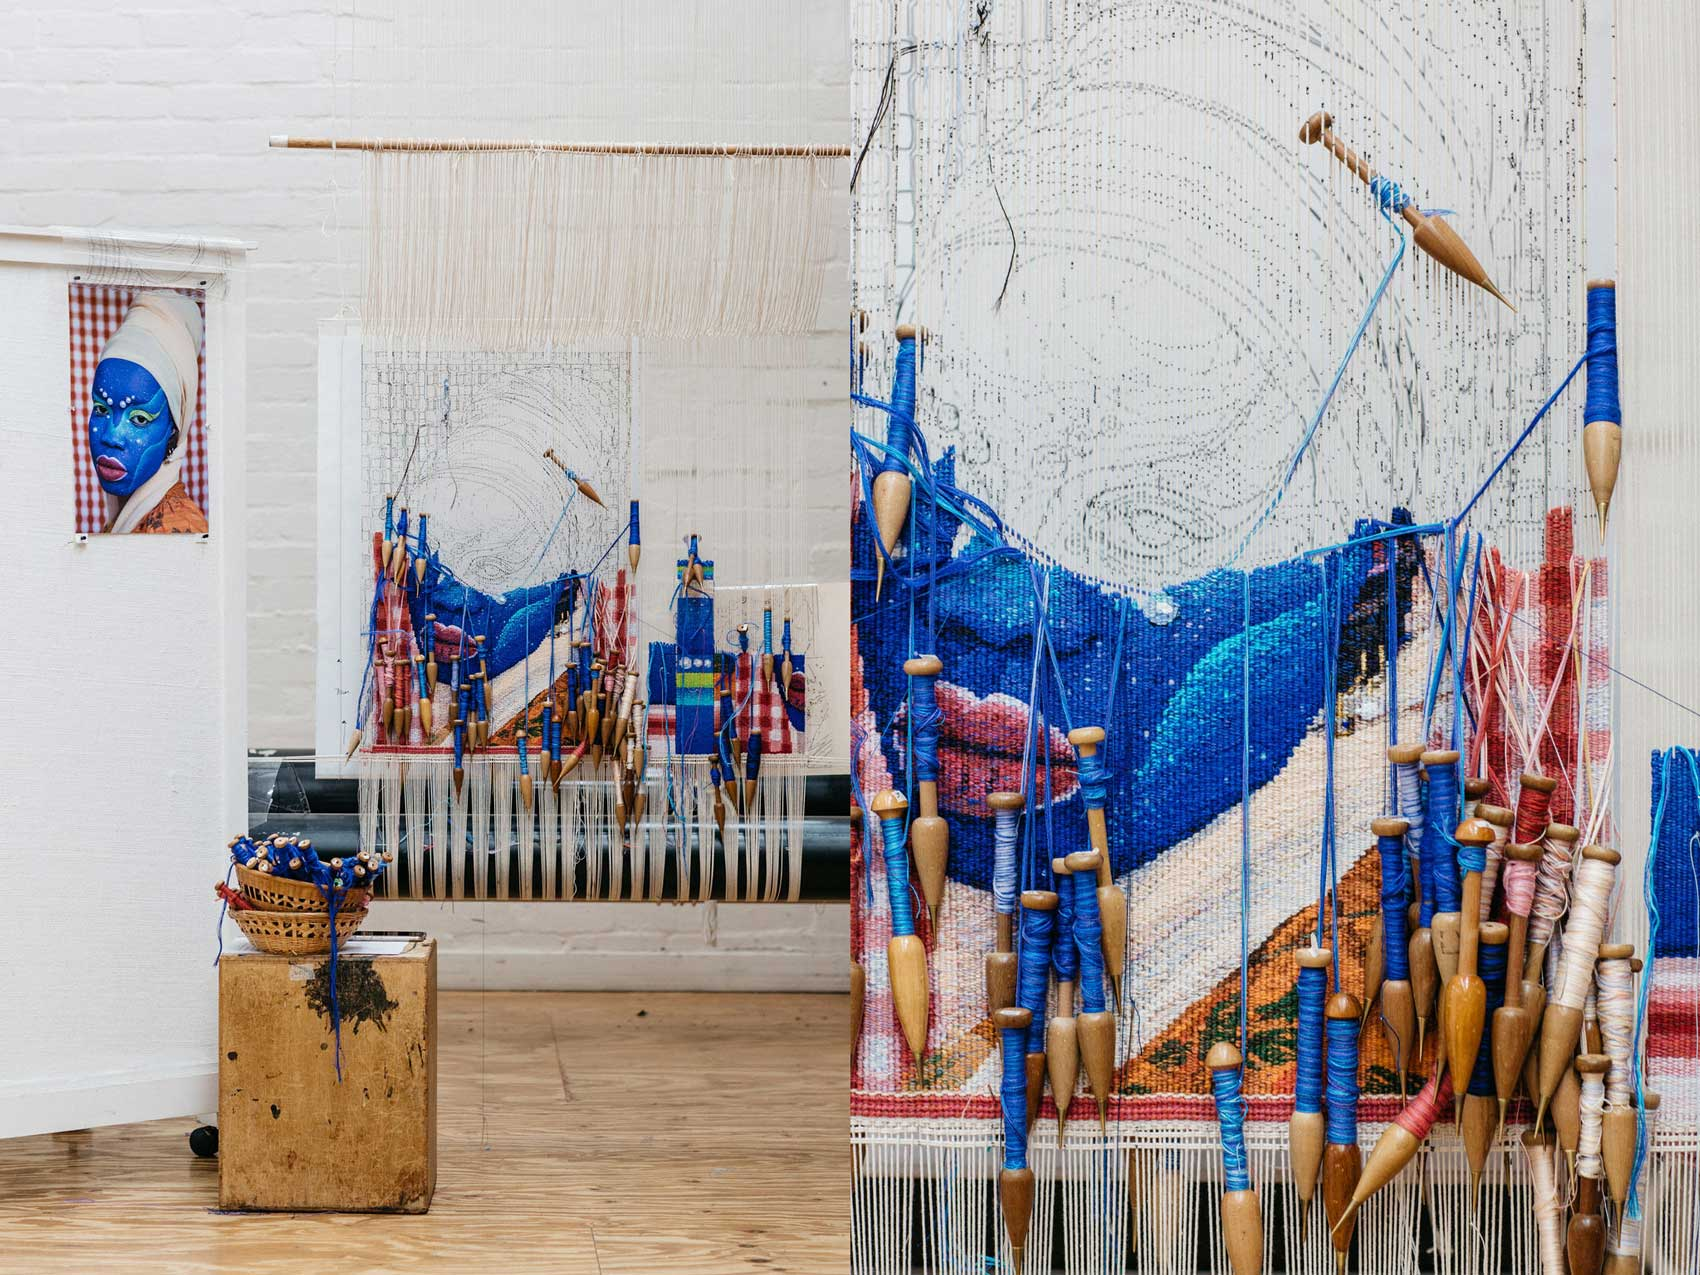 Tapestry in progress: 'Self Portrait in July (4)', 2021, designed by Atong Atem, woven by Pamela Joyce. Images courtesy of Marie-Luise Skibbe.